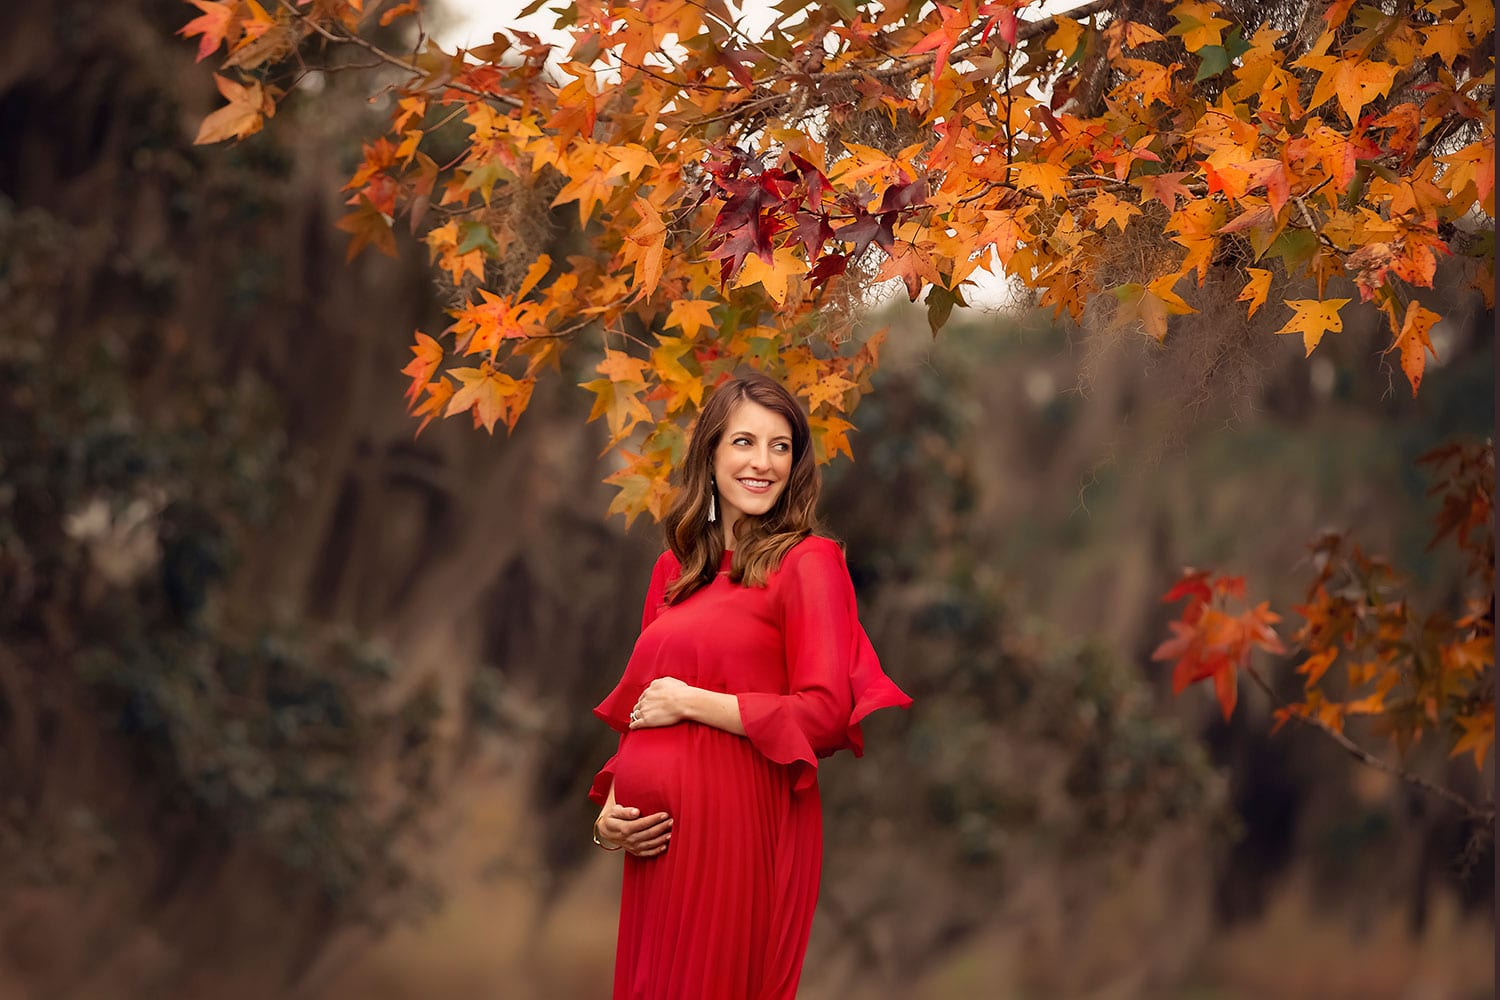 Fine art maternity session in New Orleans LA by Annie Whitaker Photography